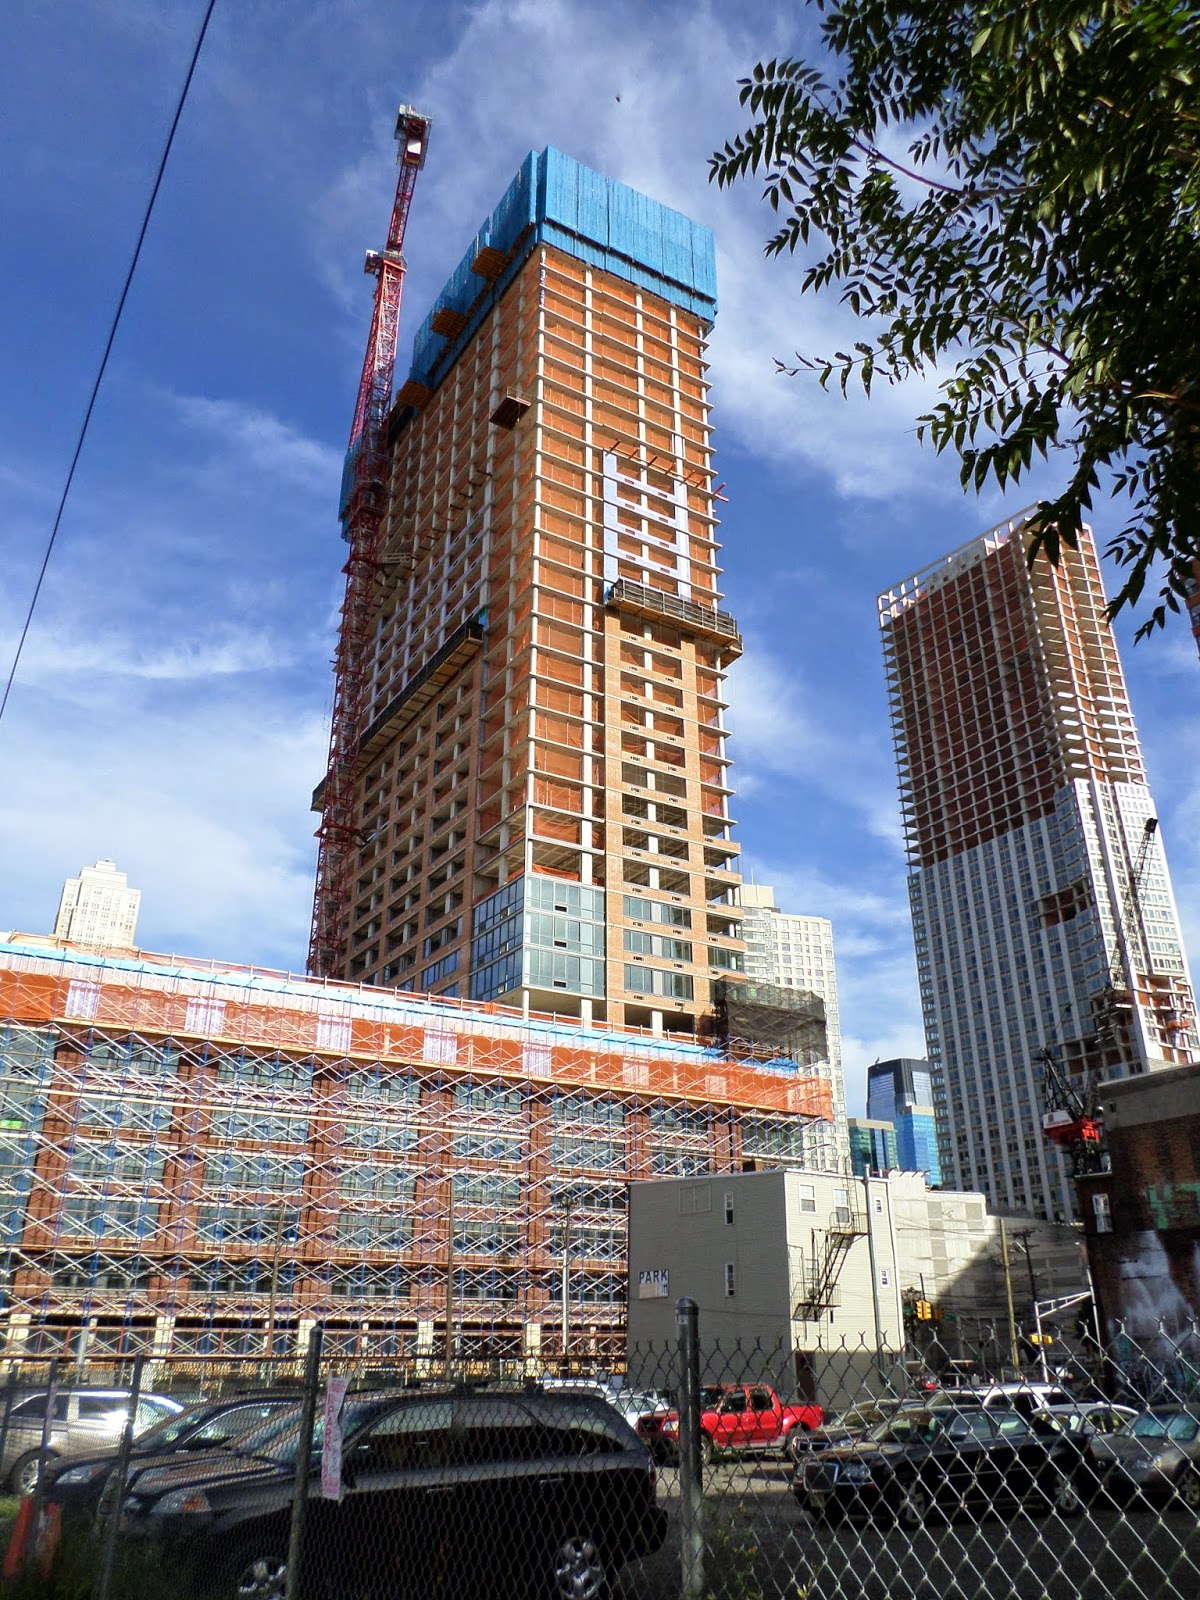 The Morgan At Provost Square >> JERSEY CITY | 160 Morgan St (Provost Square) | FT | 38 + 38 FLOORS - Under Construction - YIMBY ...